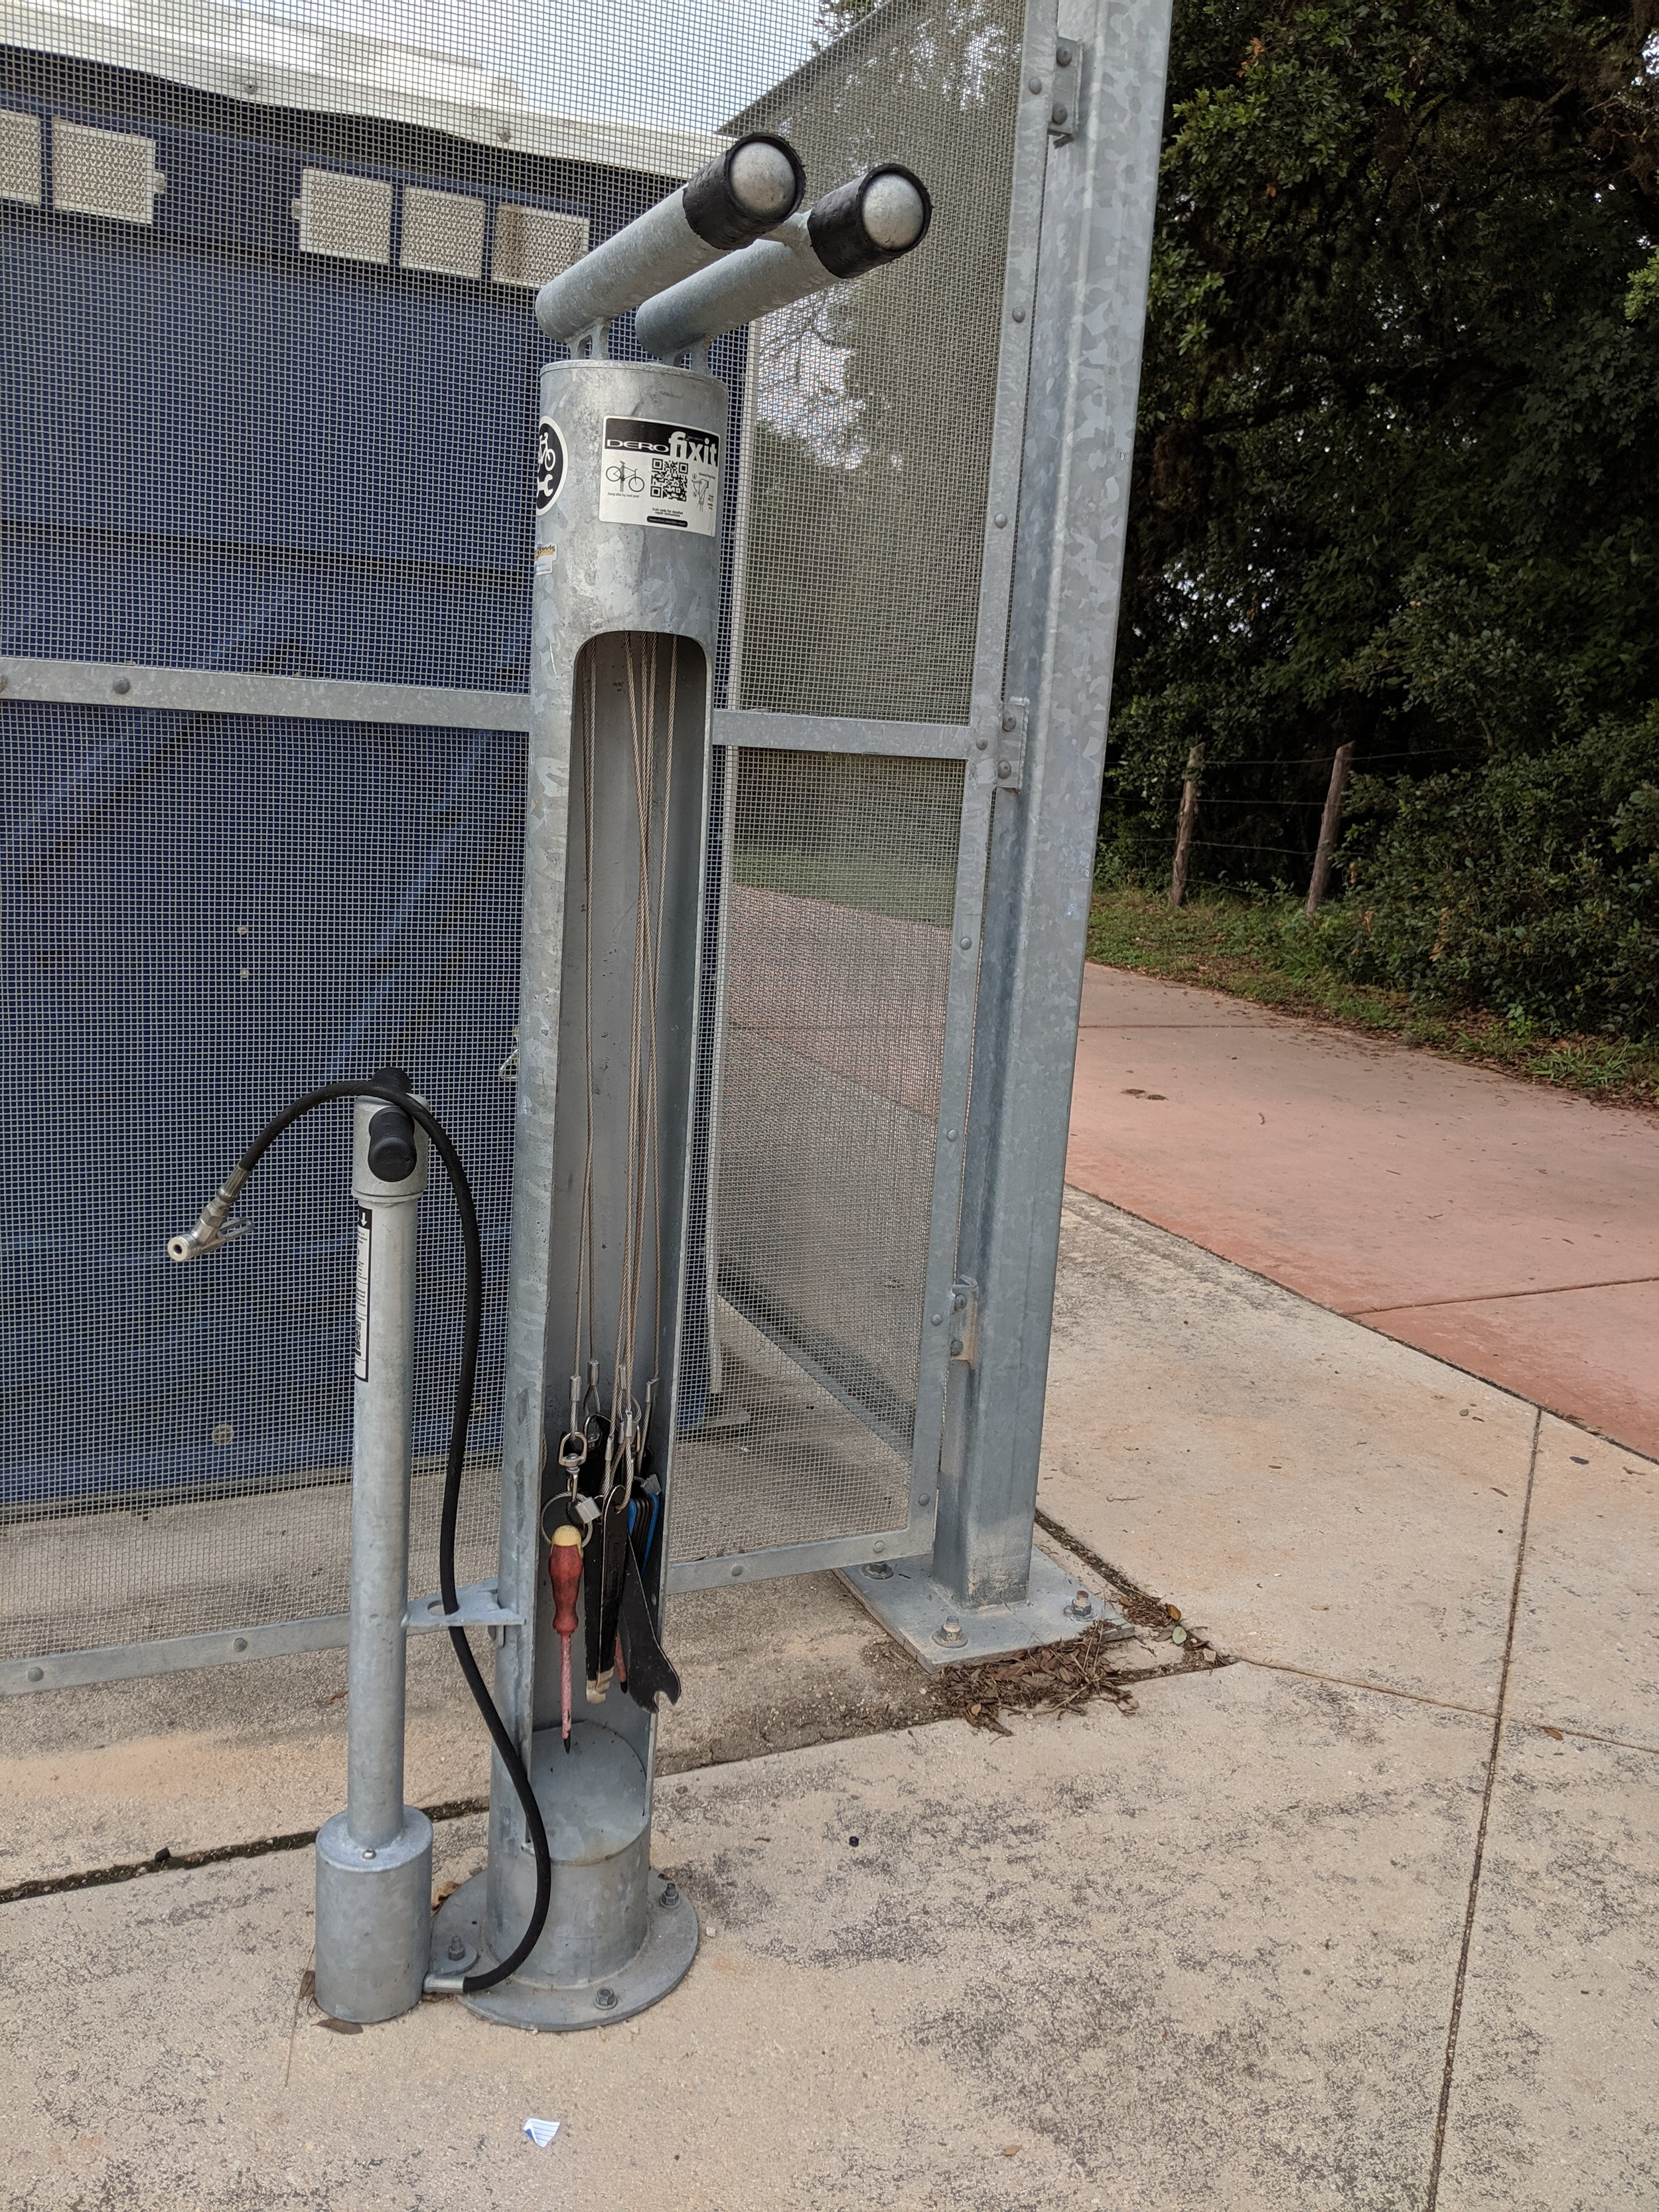 Bicycle Repair Station - There is a bicycle repair station located at the Voelcker Homestead Trailhead.The station has tools that are commonly needed in bike repair and an air pump station.Bicycle Parking is located throughout the park